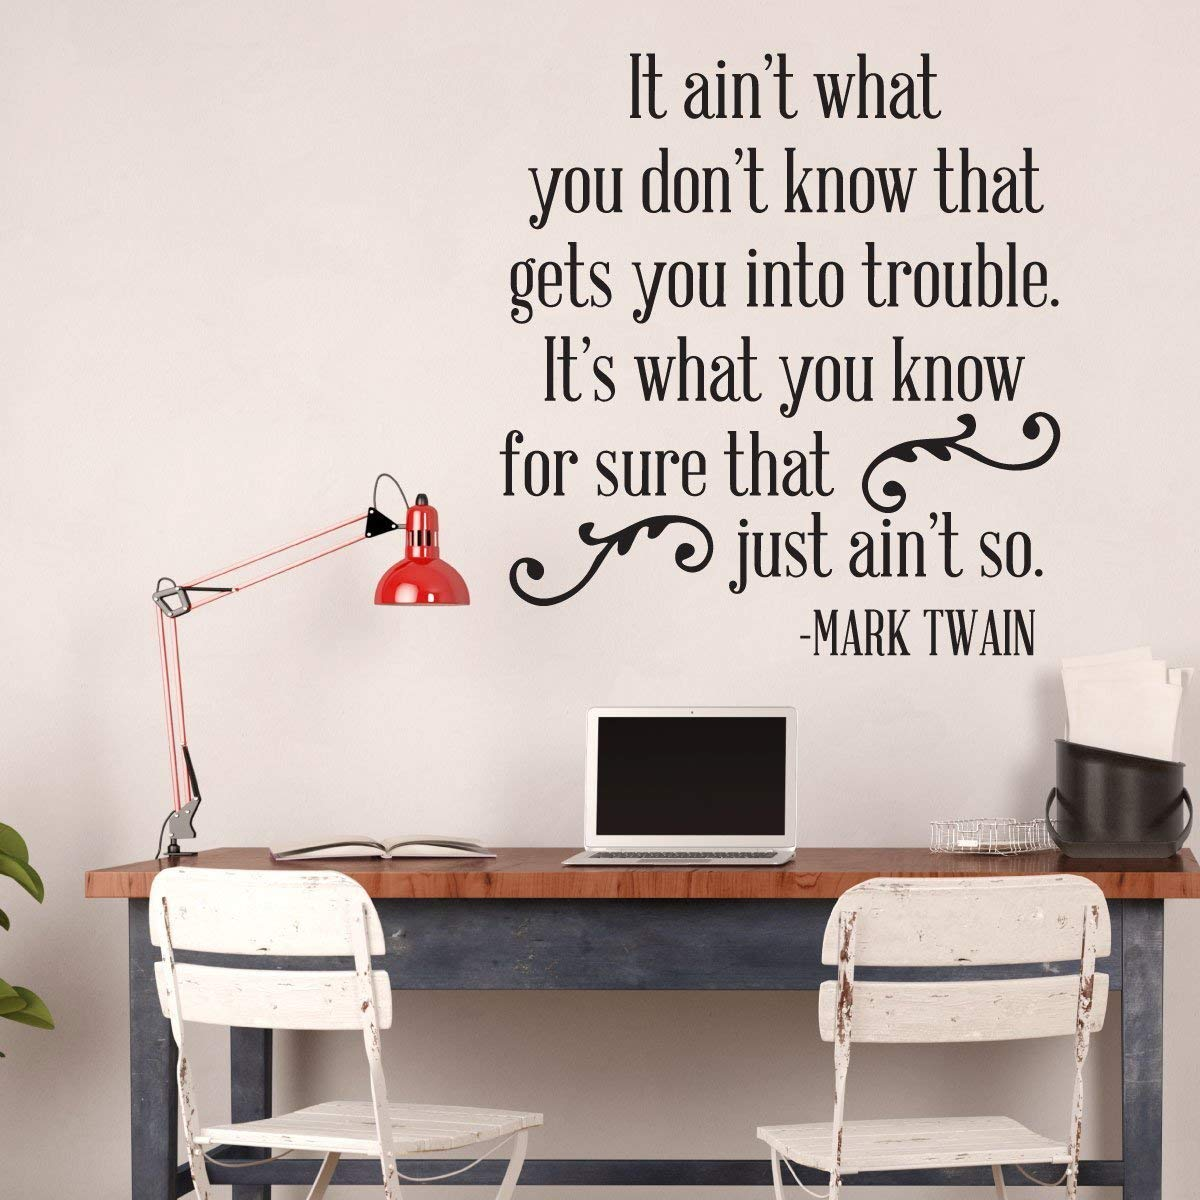 Brown Large Sizes Vinyl Decor Saying for Decorating Home Light Dark Colors Small It Aint What You Dont Know Red White Black Mark Twain Quote Wall Decal School Classroom Restaurant